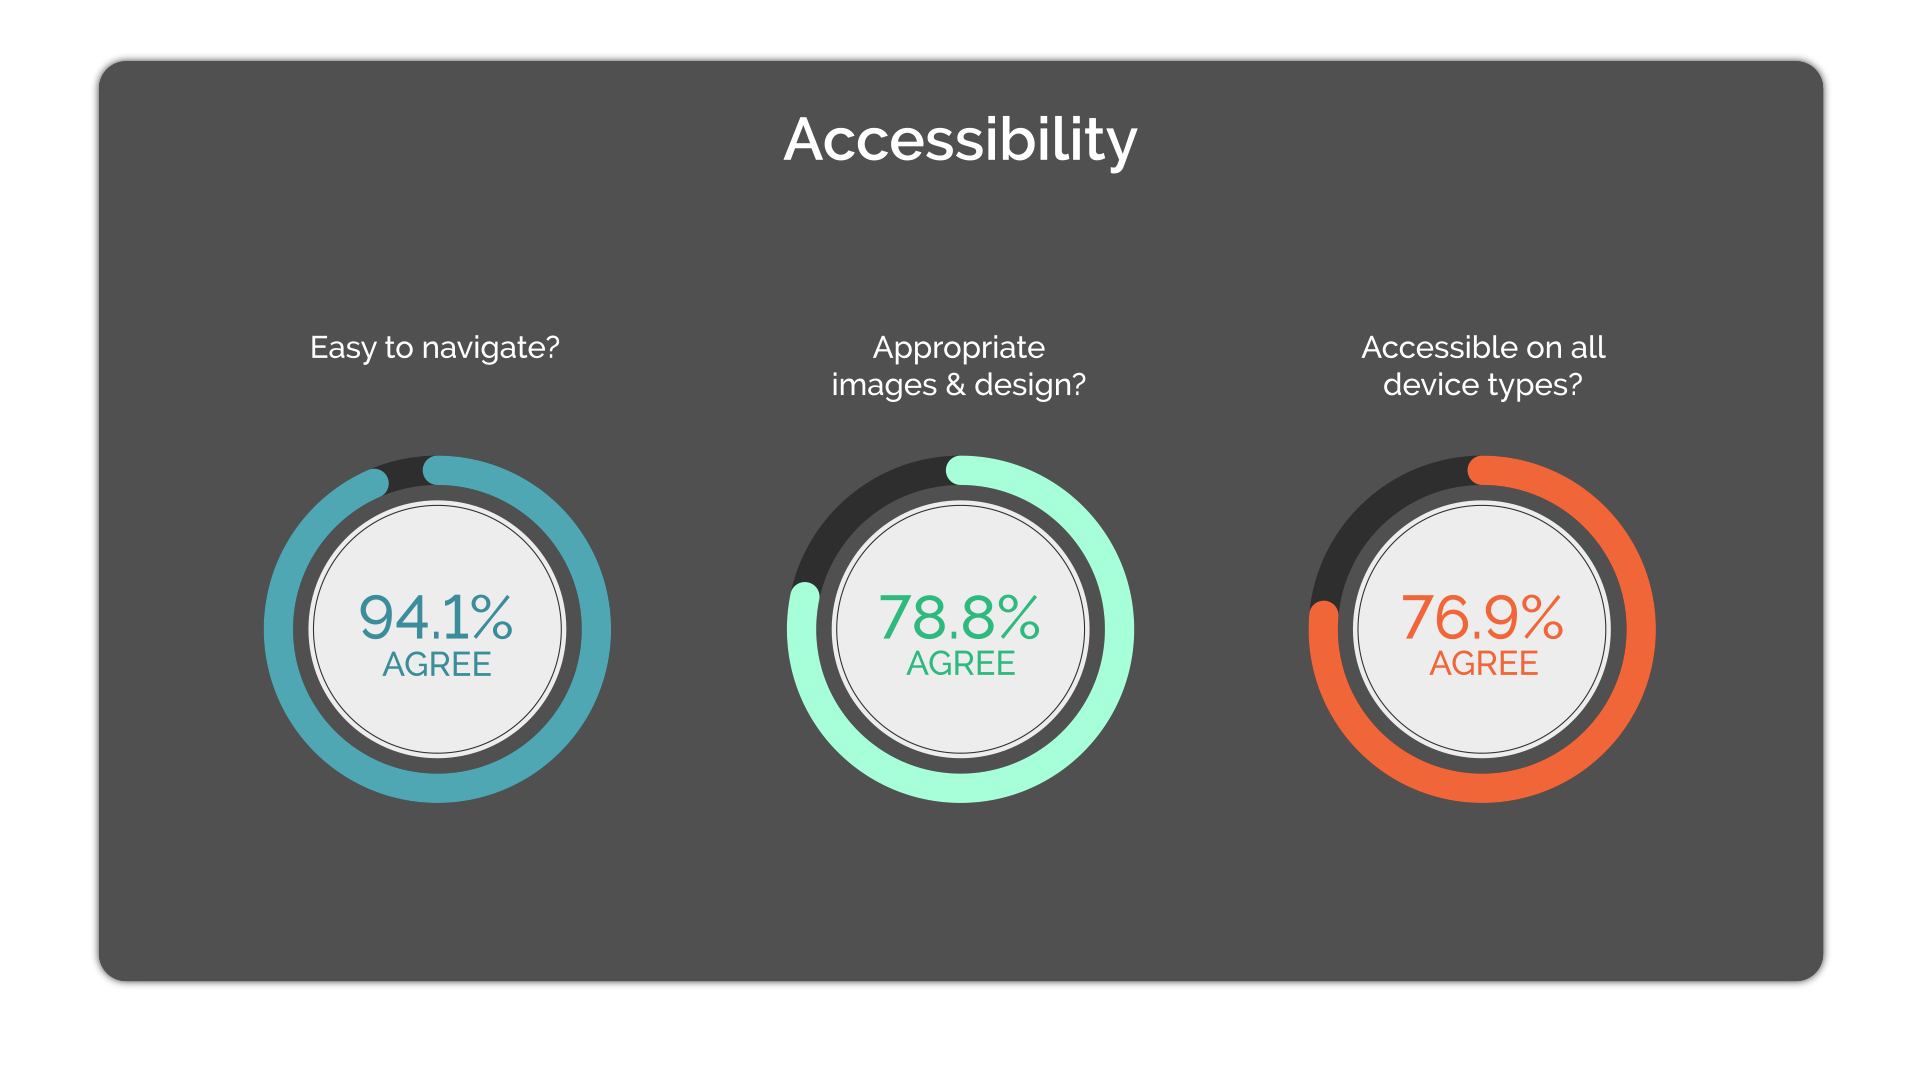 A data image showing a large proportion of students agreeing the module is easy to navigate with appropriate images and accessible on all device types.